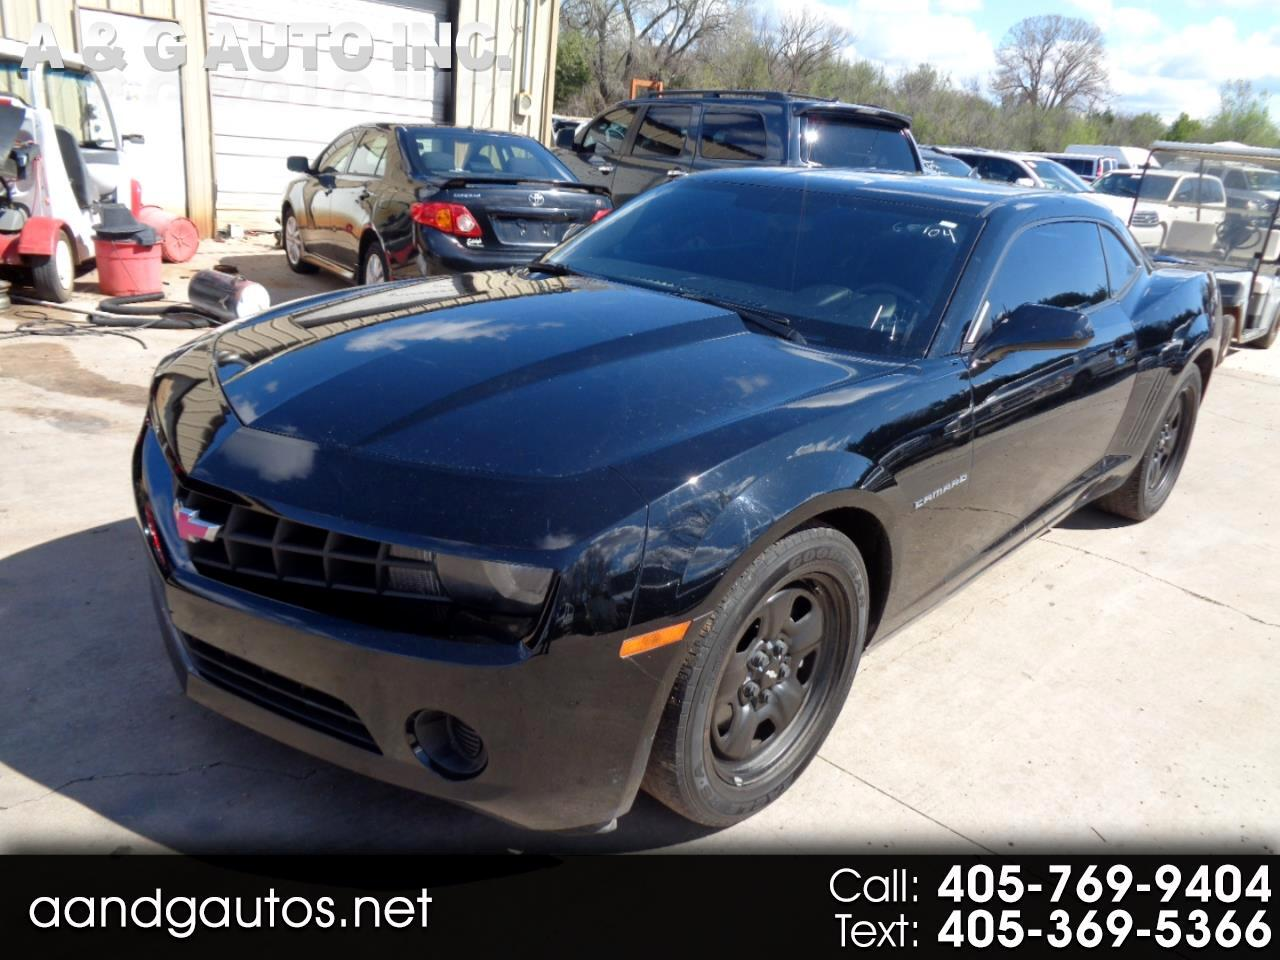 Chevrolet Camaro LS Coupe 2013